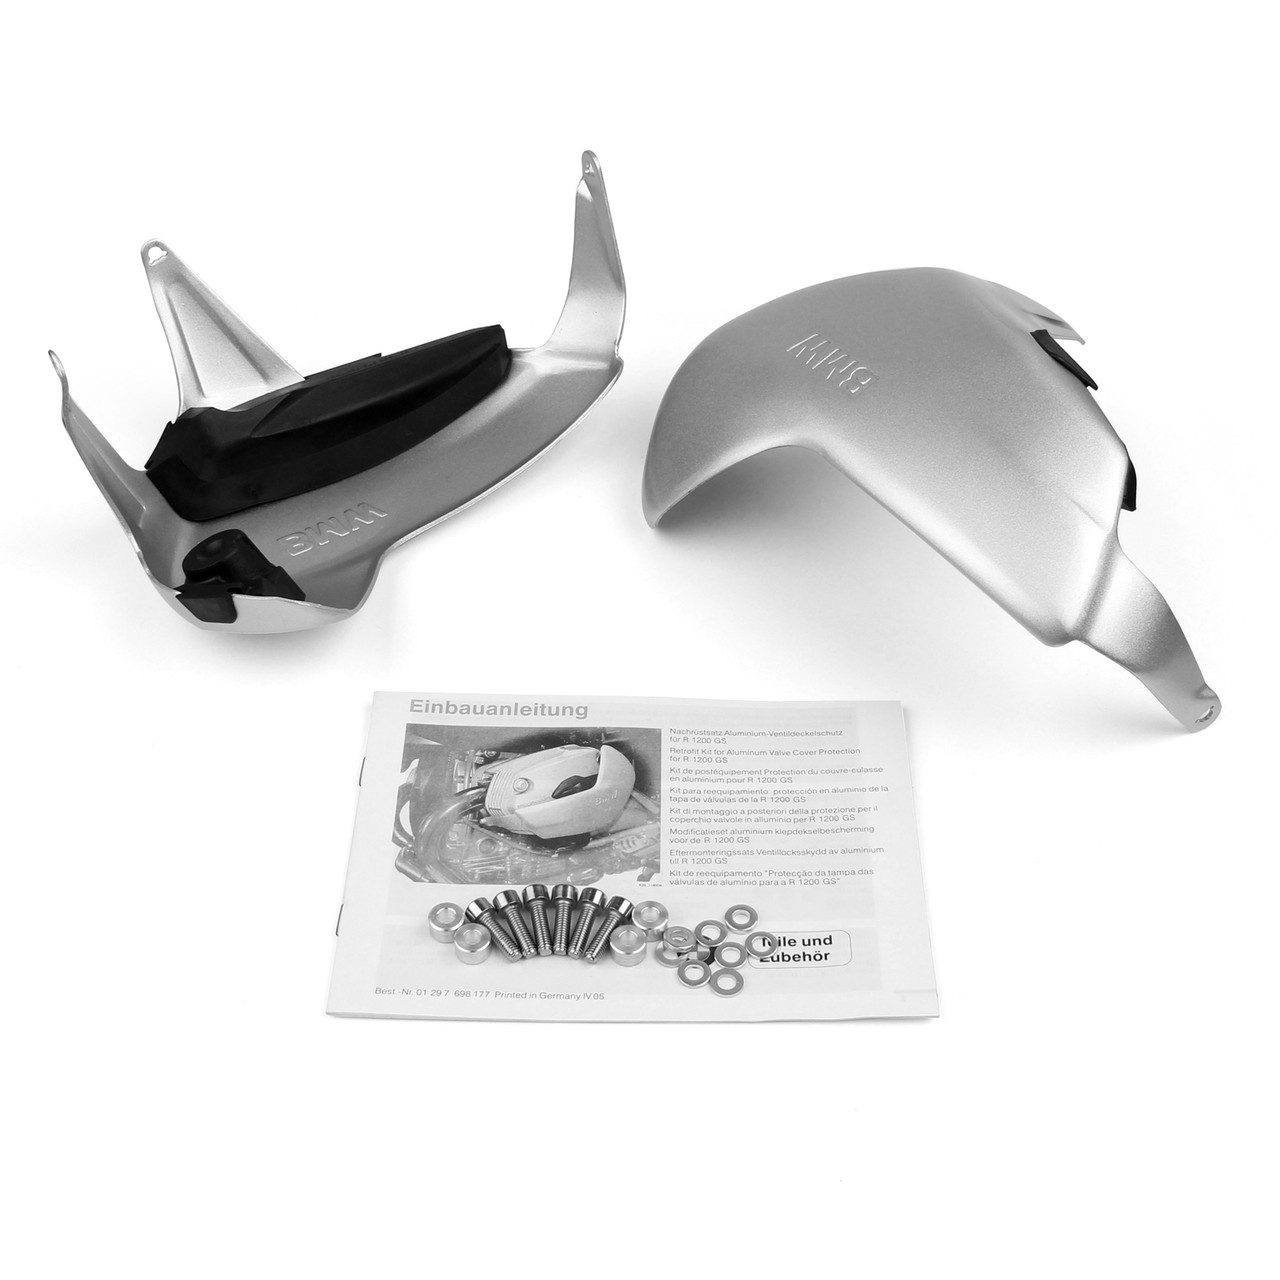 http://www.madhornets.store/AMZ/MotoPart/Engine%20Guard%20Extensions/M515-A001/M515-A001-Silver-1.jpg